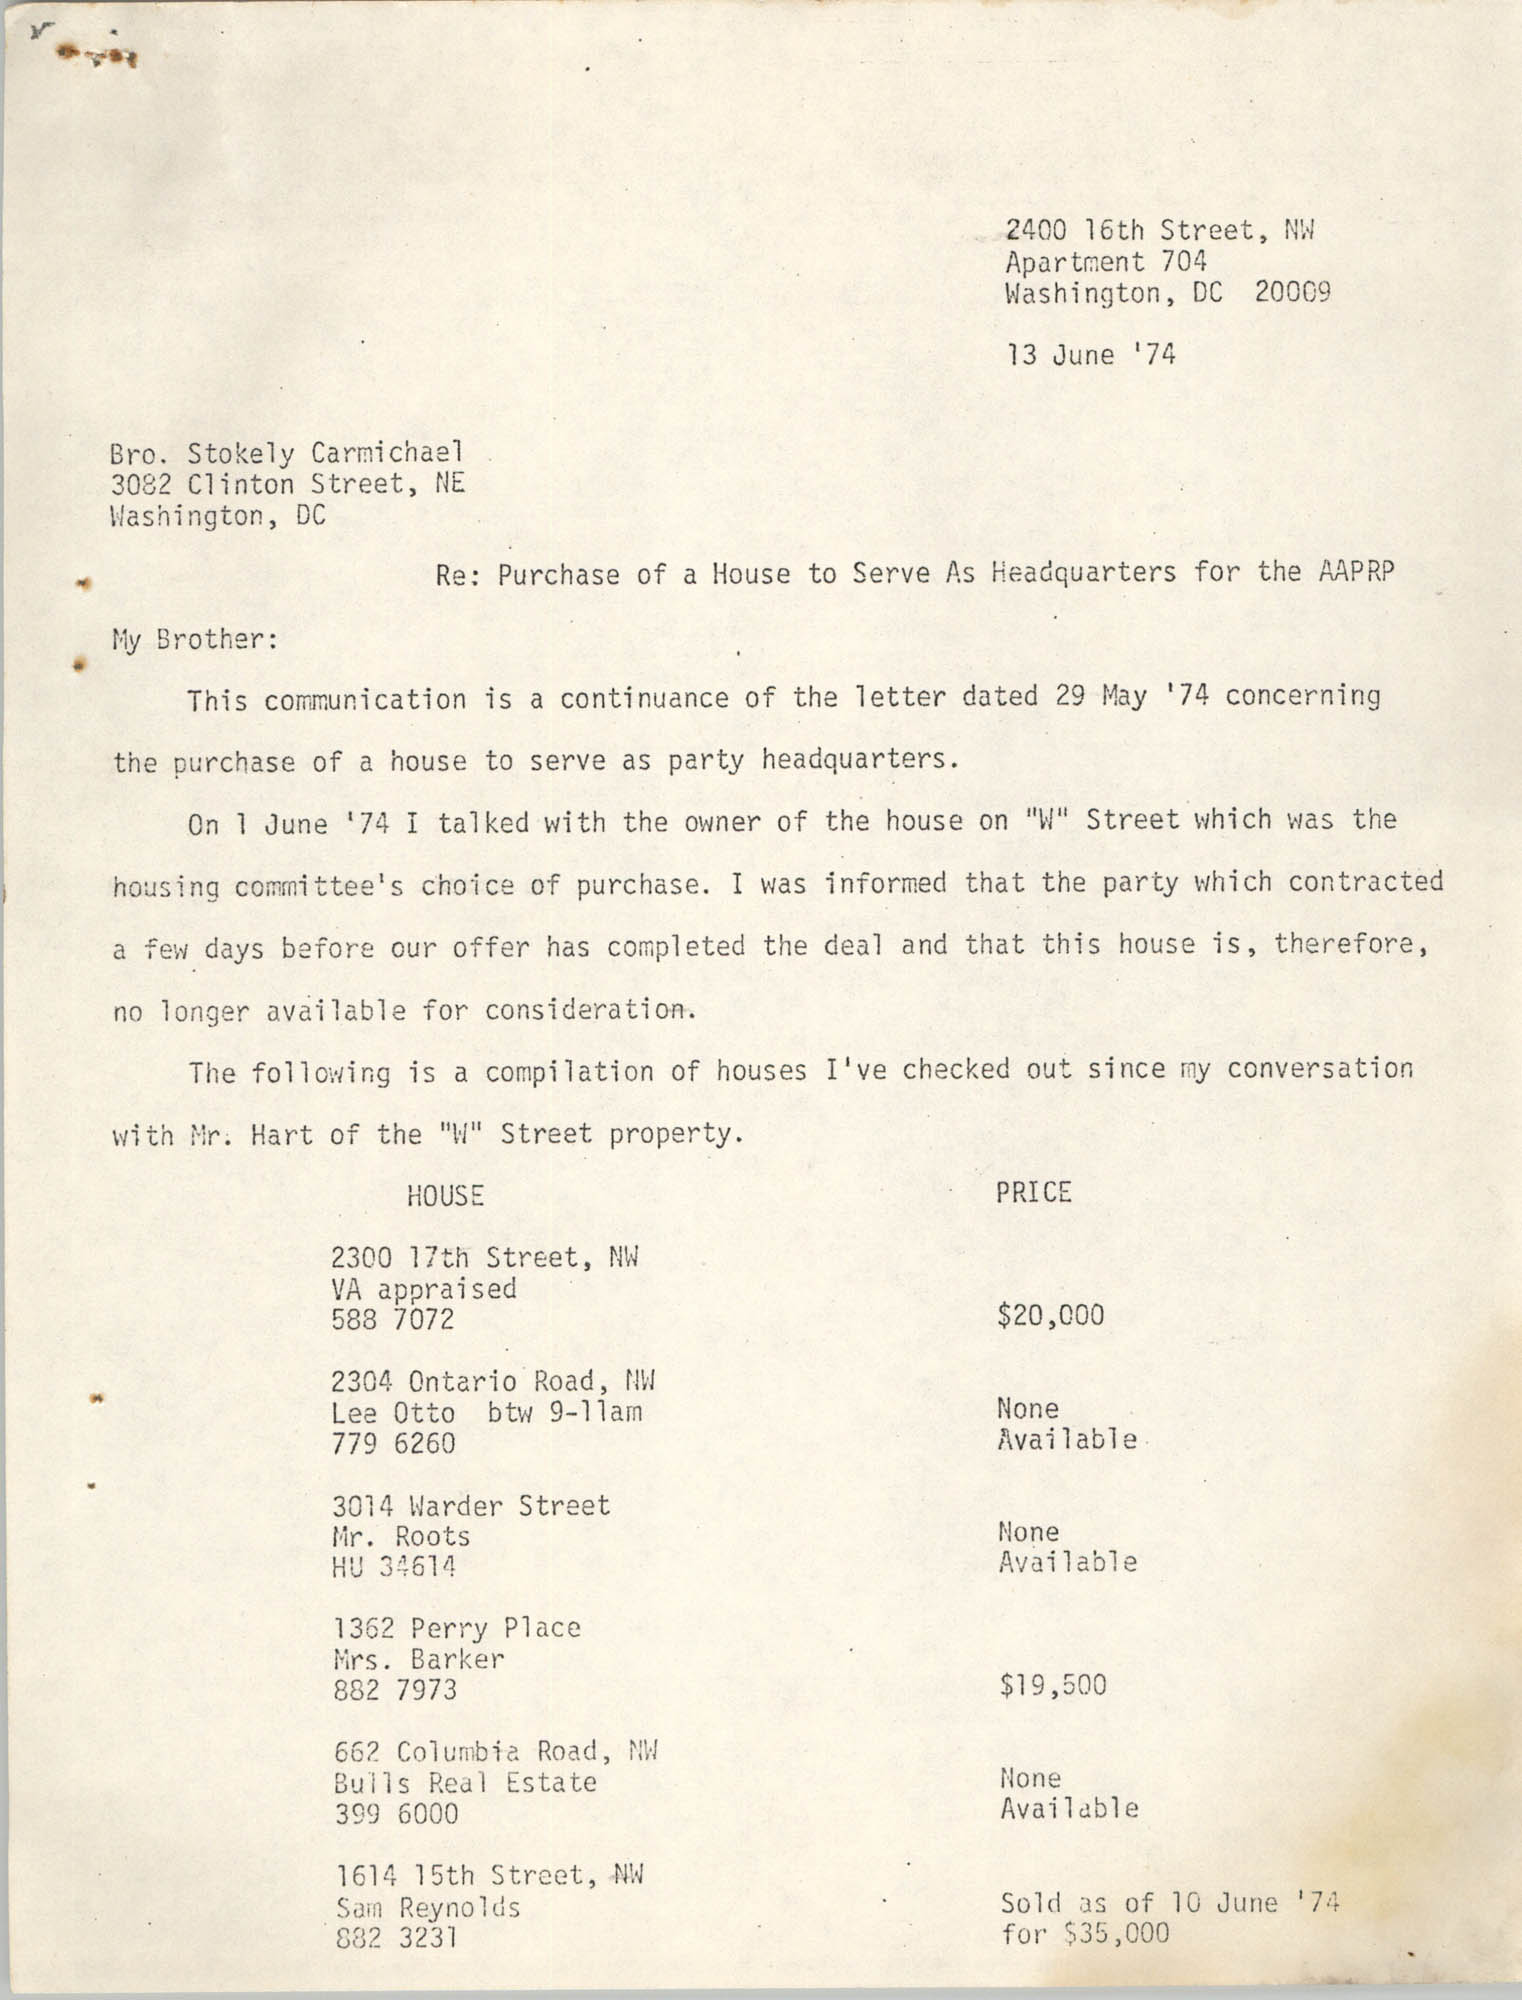 Letter from Jan Bailey to Stokely Carmichael, June 13, 1974